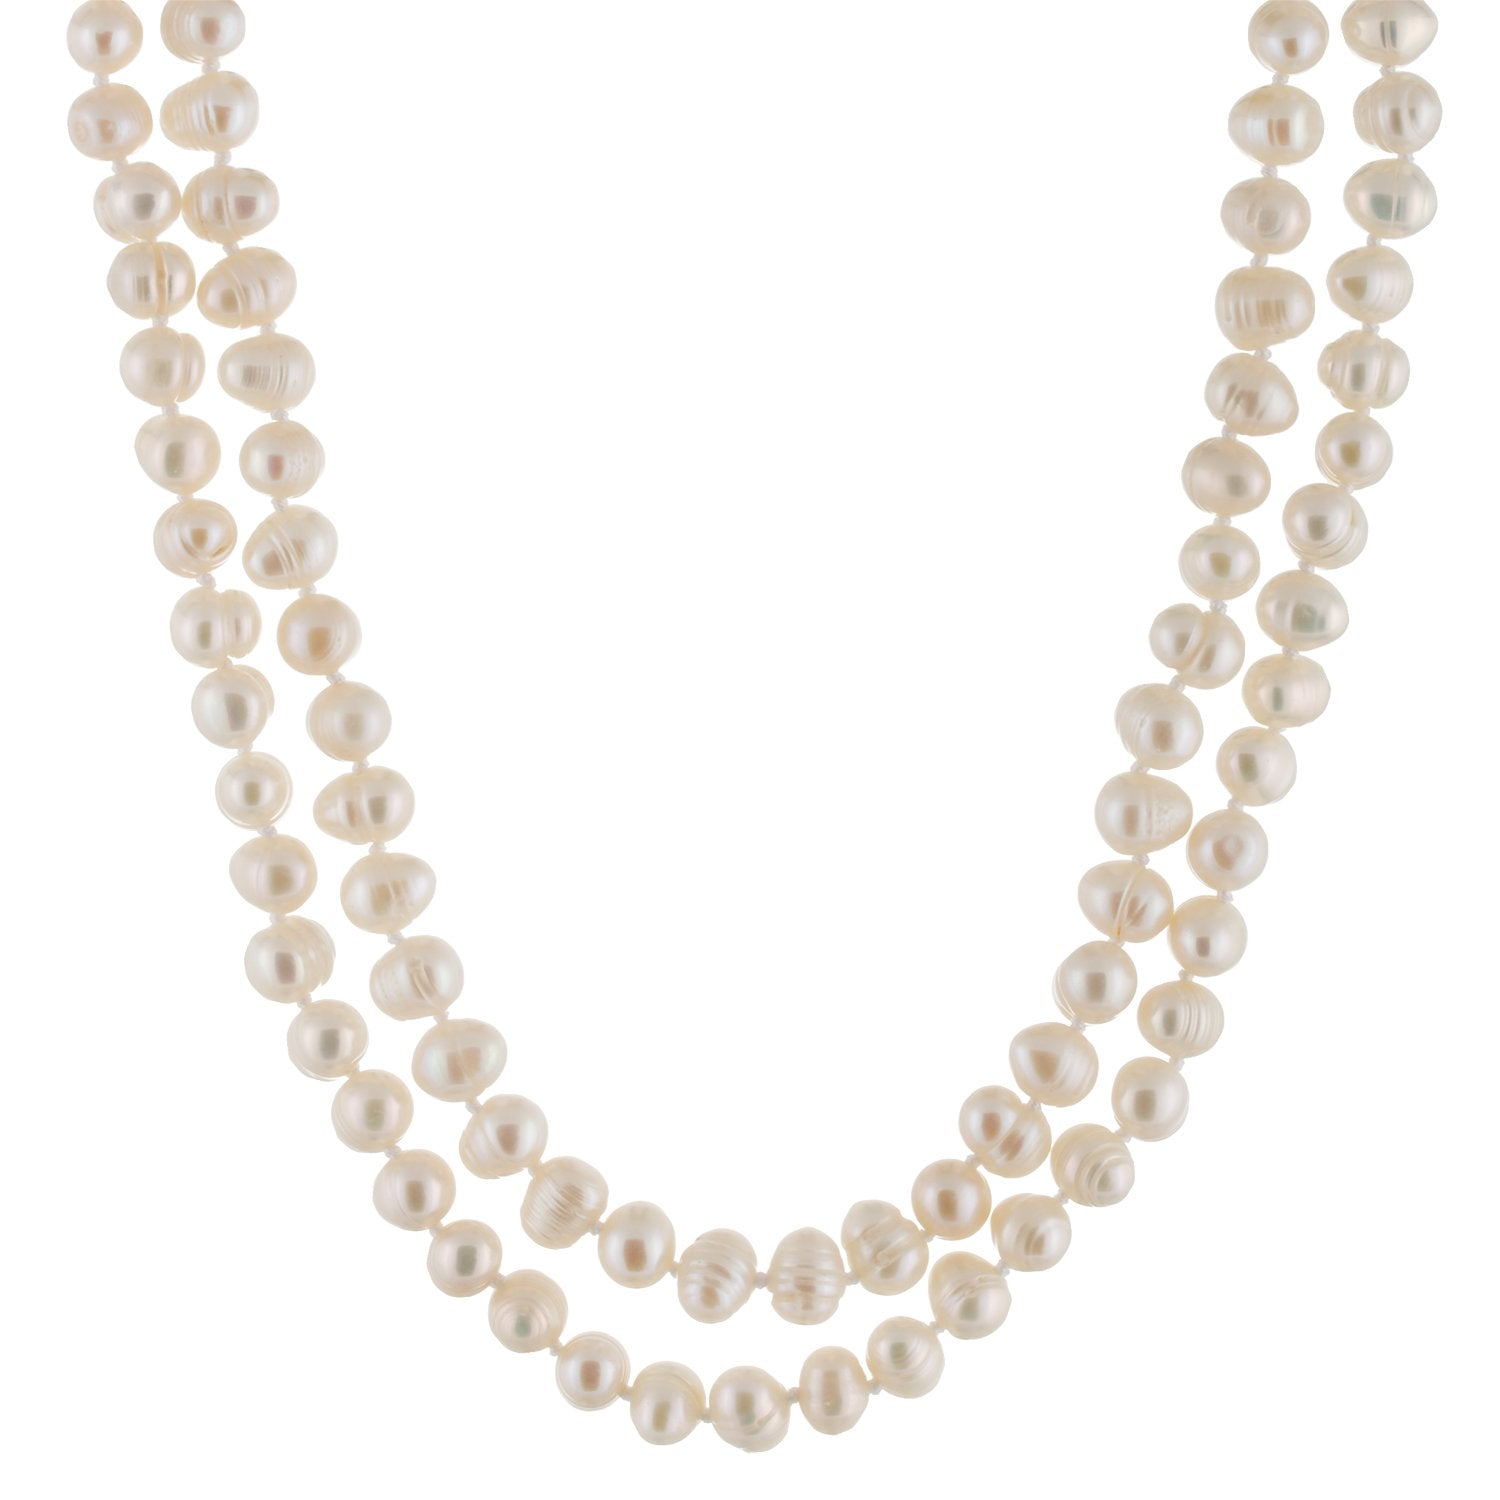 "Beautiful White Endless 64"" Necklace"